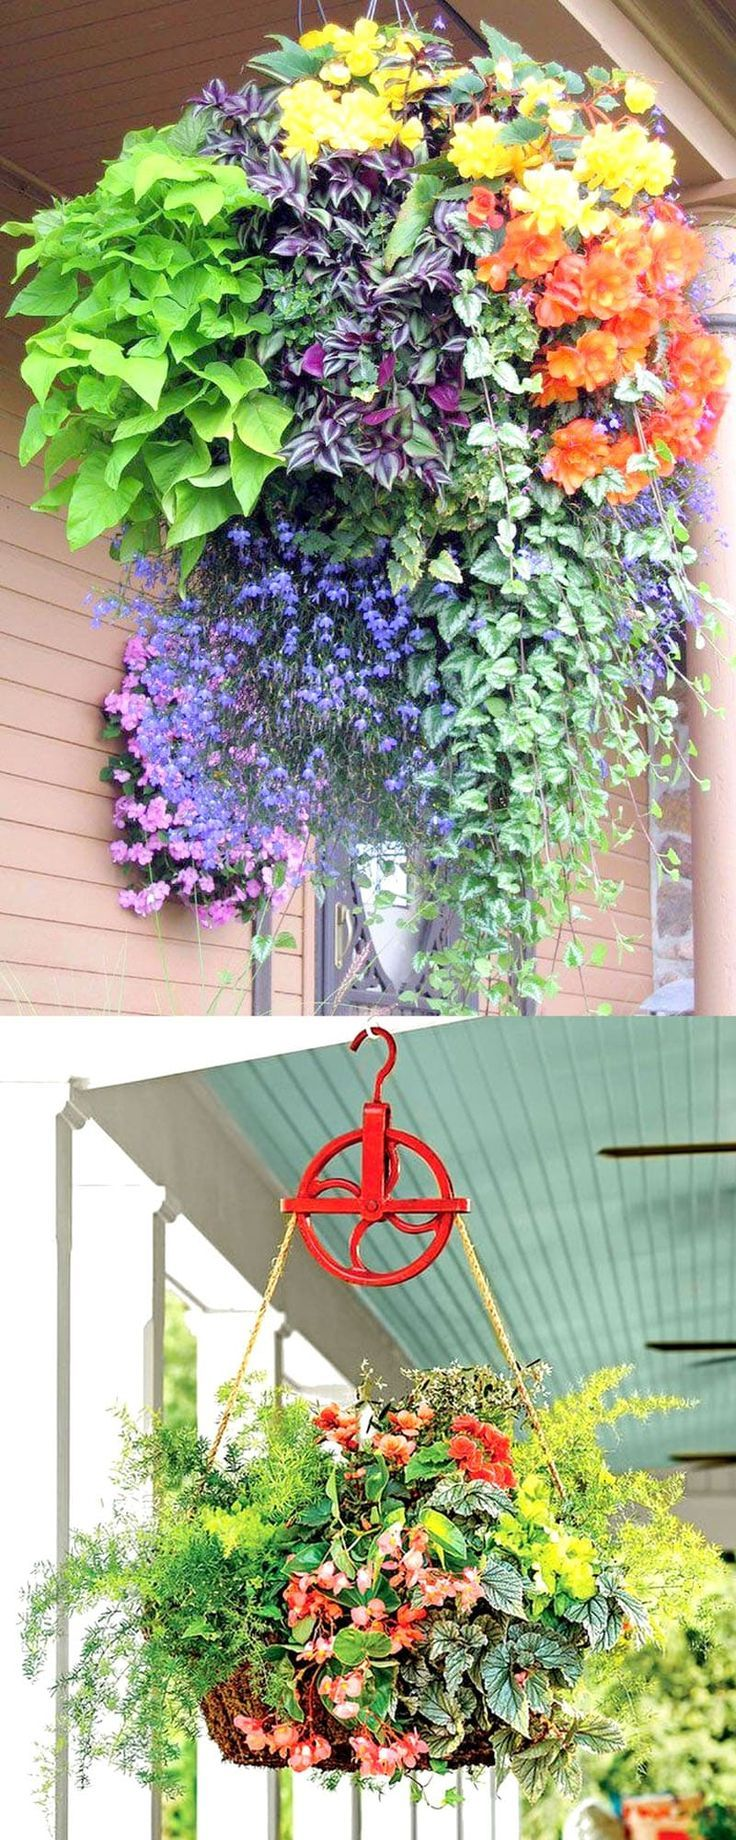 How to plant beautiful hanging baskets that last for months. Choose the best plants from these 15 designer plant lists for hanging flower baskets in sun or shade, plus easy care tips on soil, water and fertilizer for a healthy hanging basket! - A Piece of Rainbow